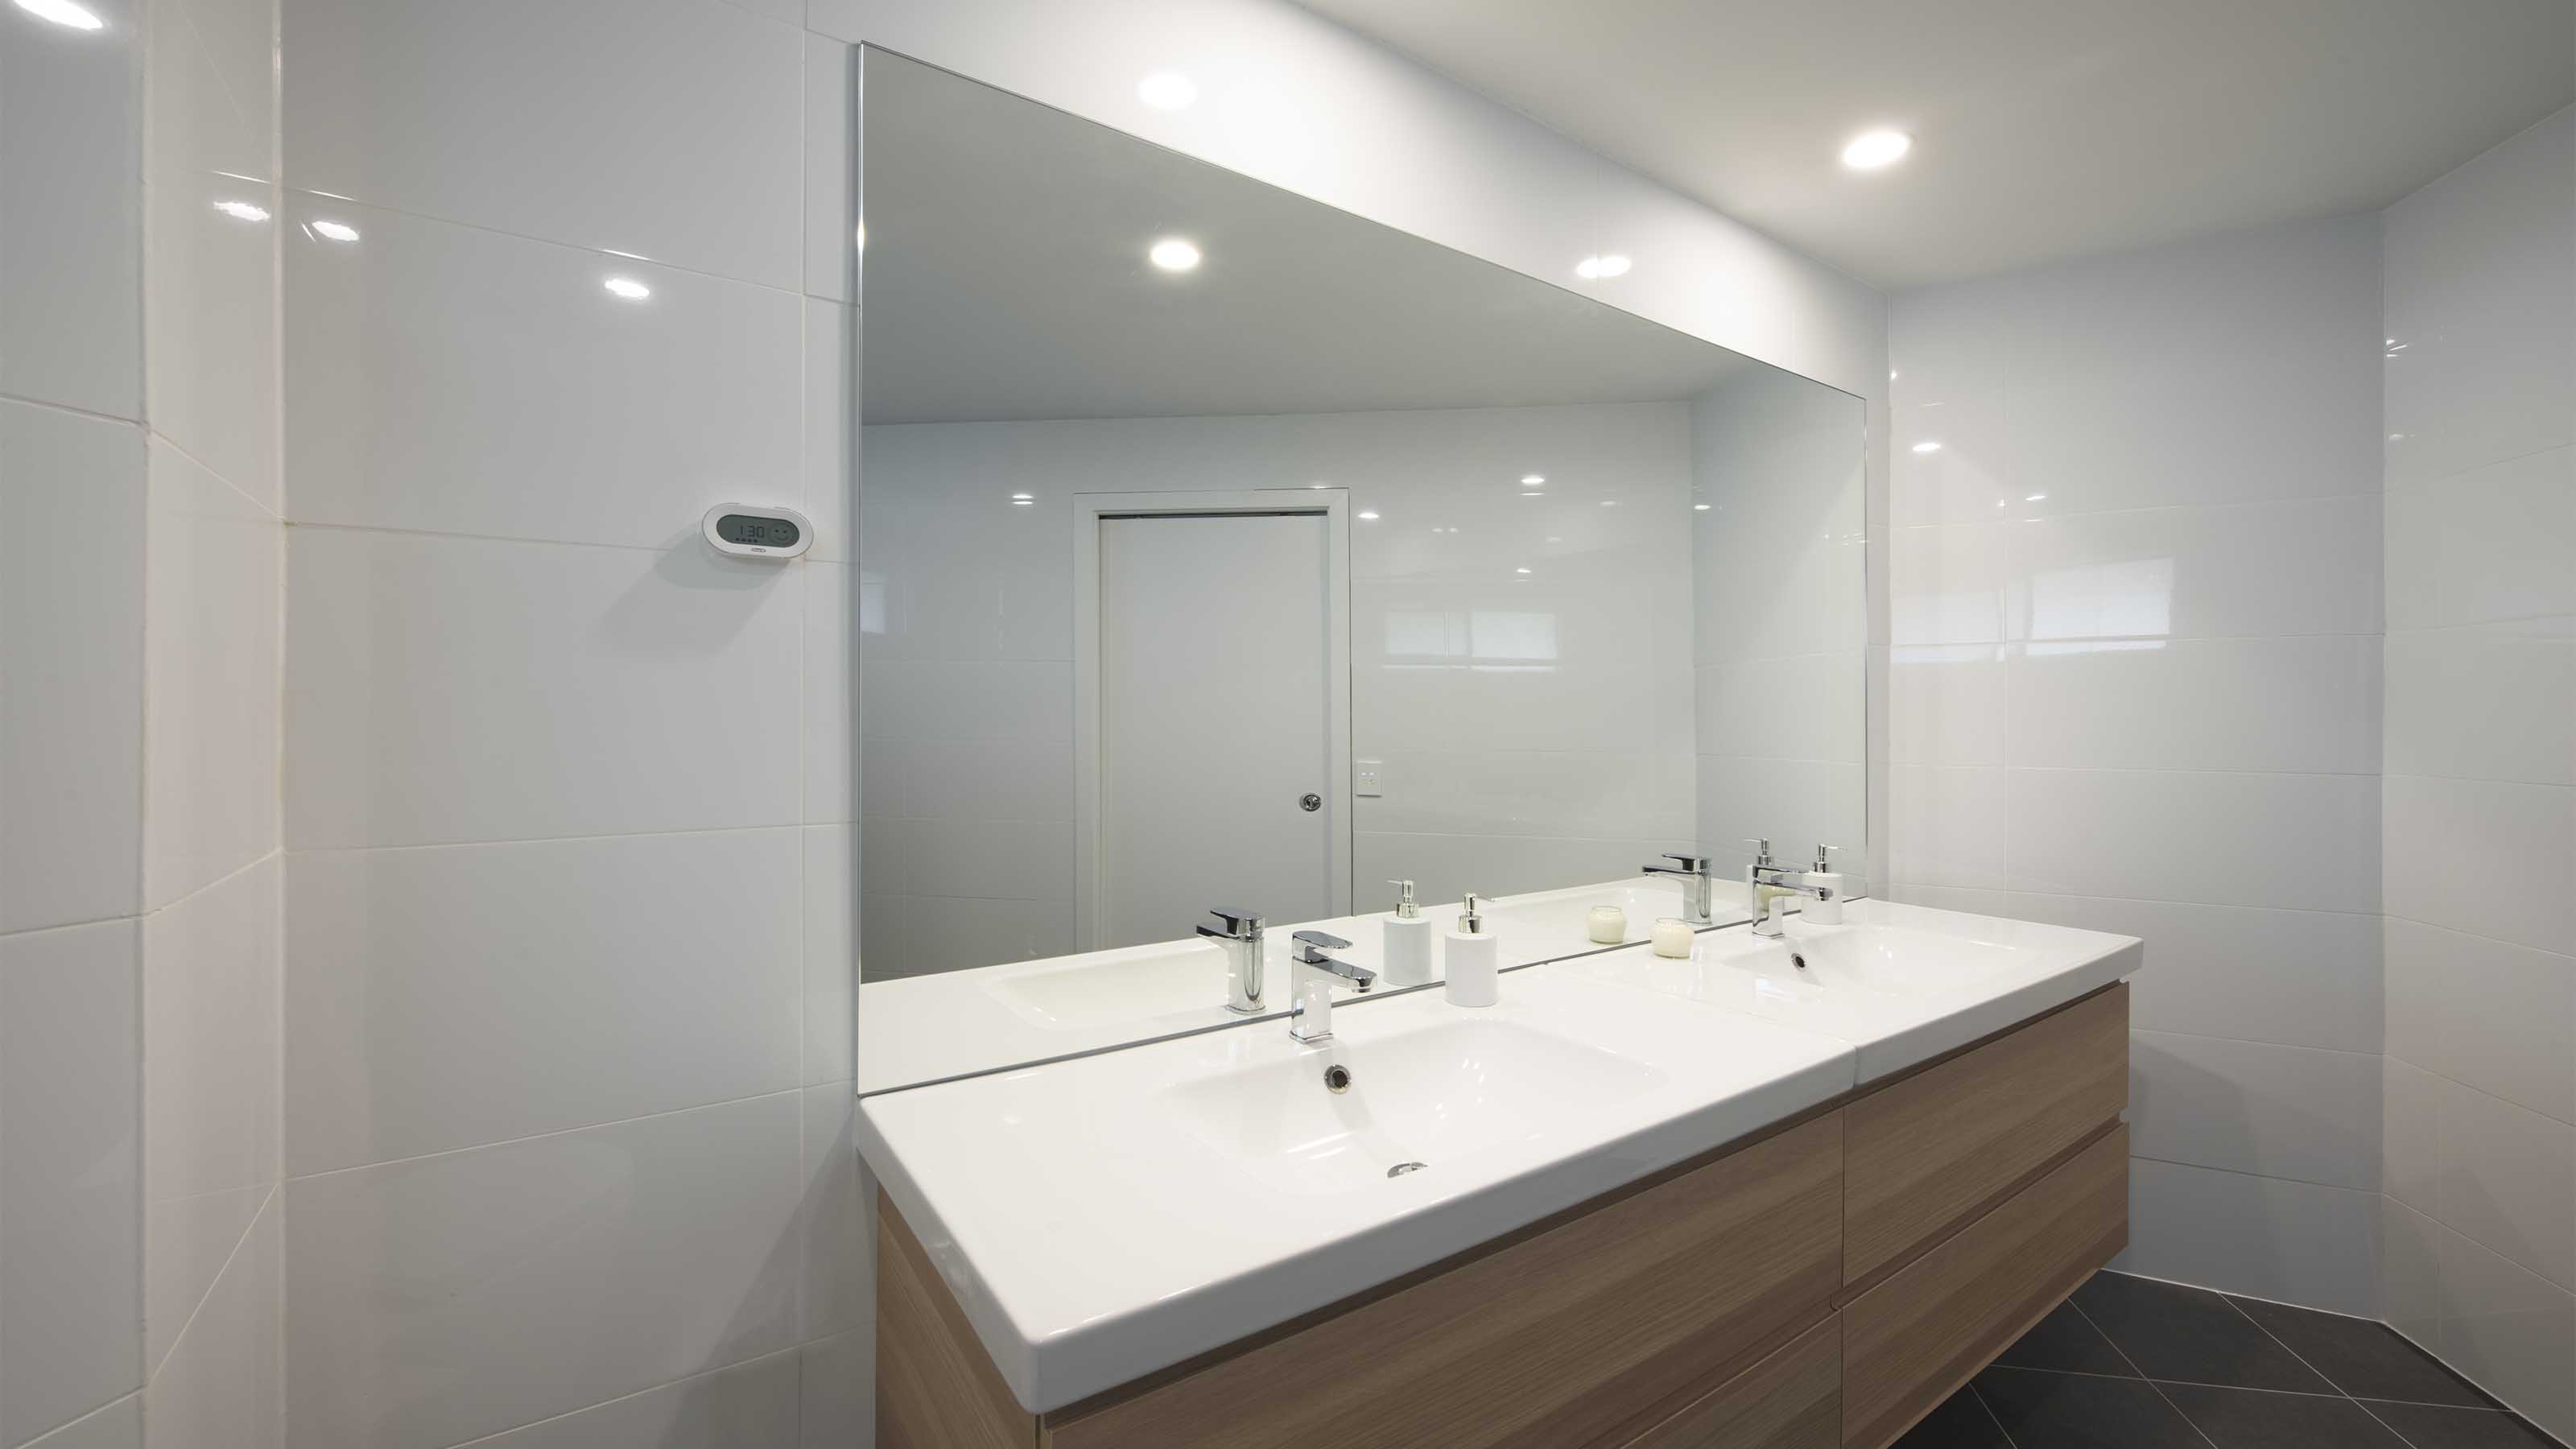 reFLECT™ - Vanity Mirror - Bathroom Ensuite Renovations - Hamlyn Heights - Supplied & Installed by - geelongsplashbacks.com.au